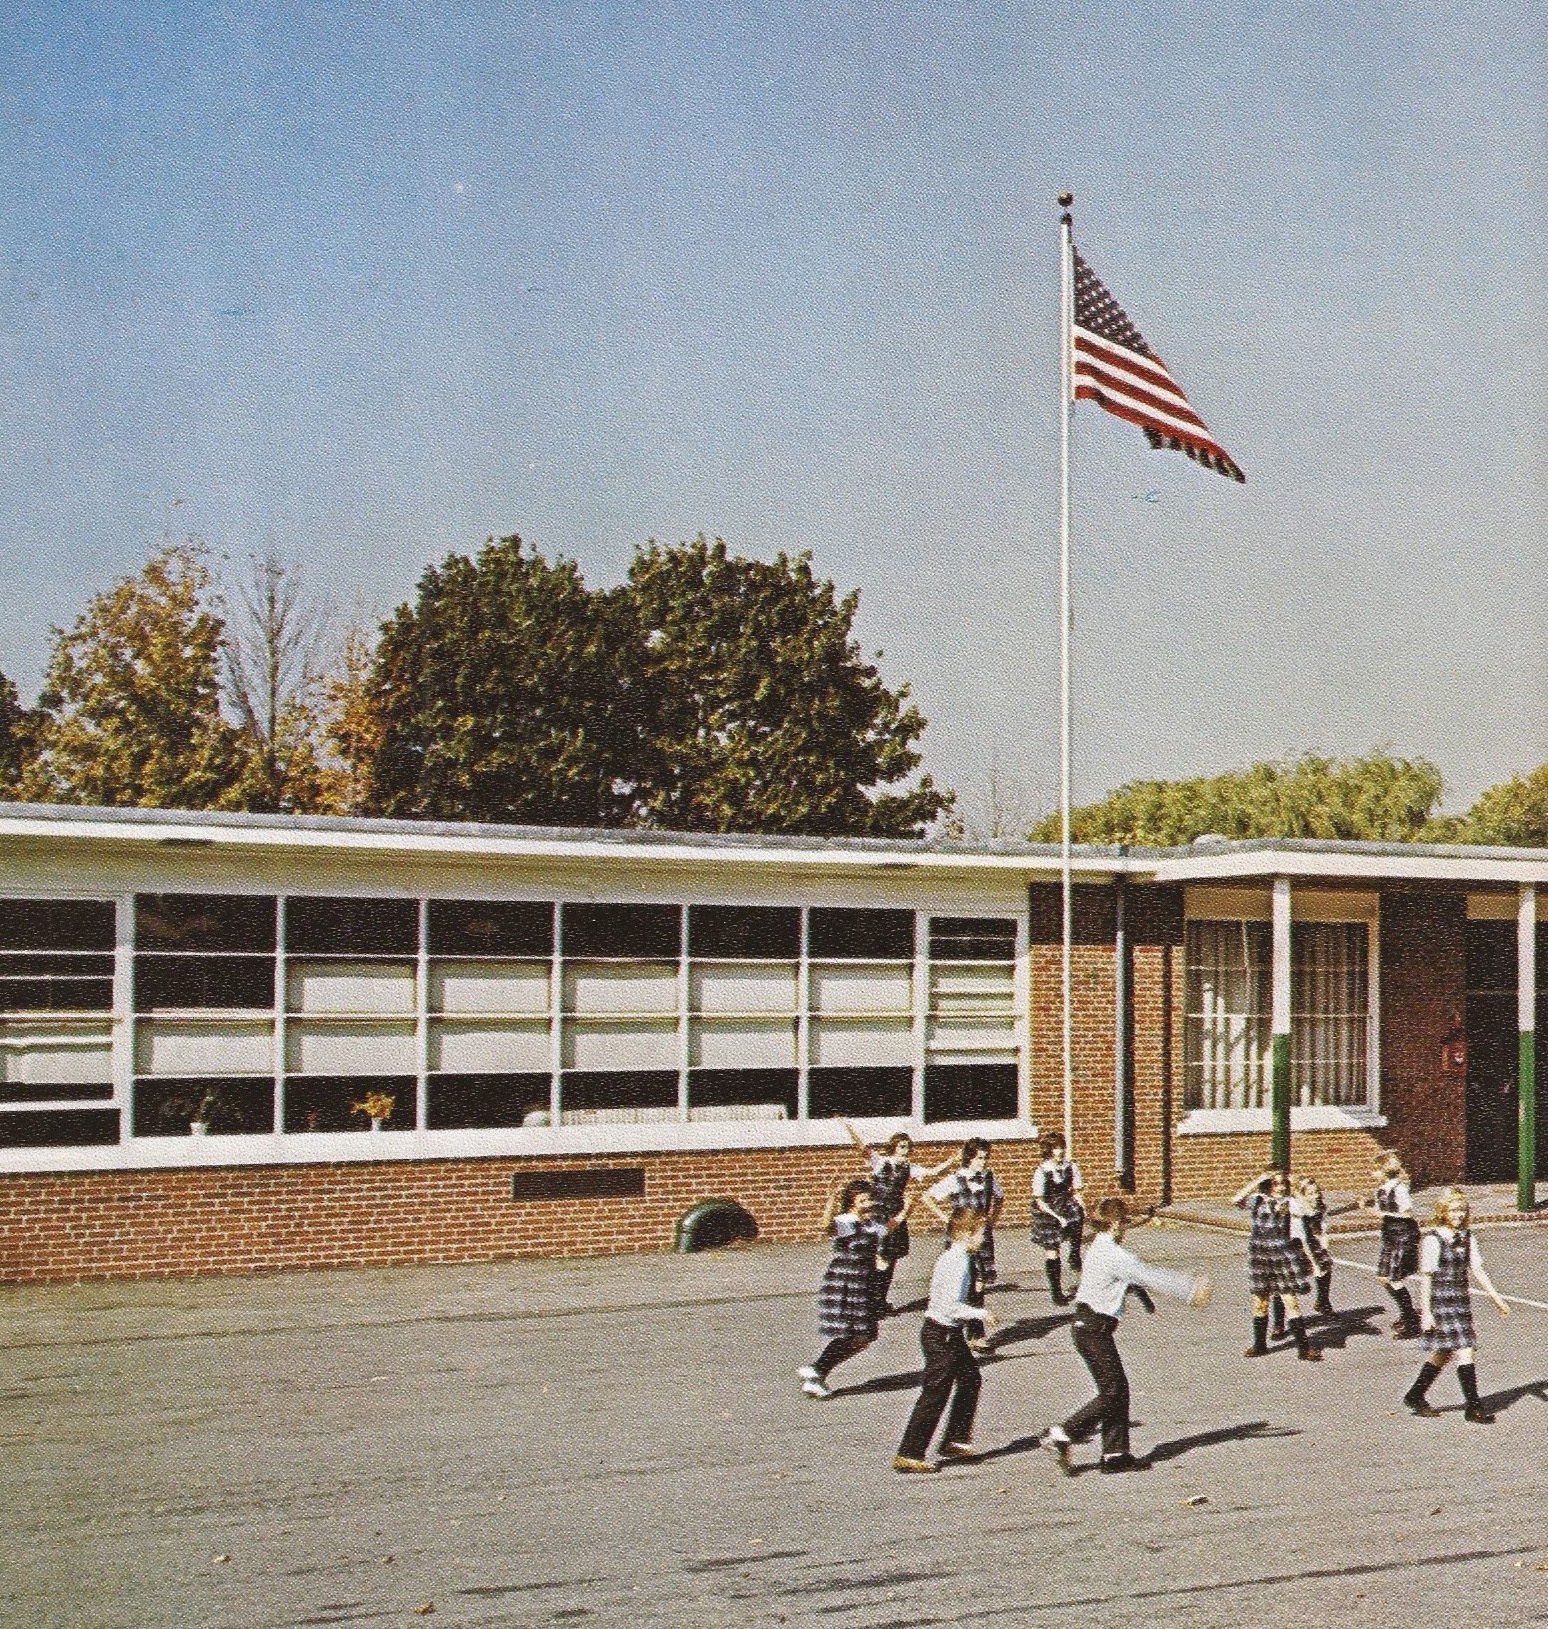 St. Michael School on Maple Avenue in 1969. Photo from 100th Anniversary book.